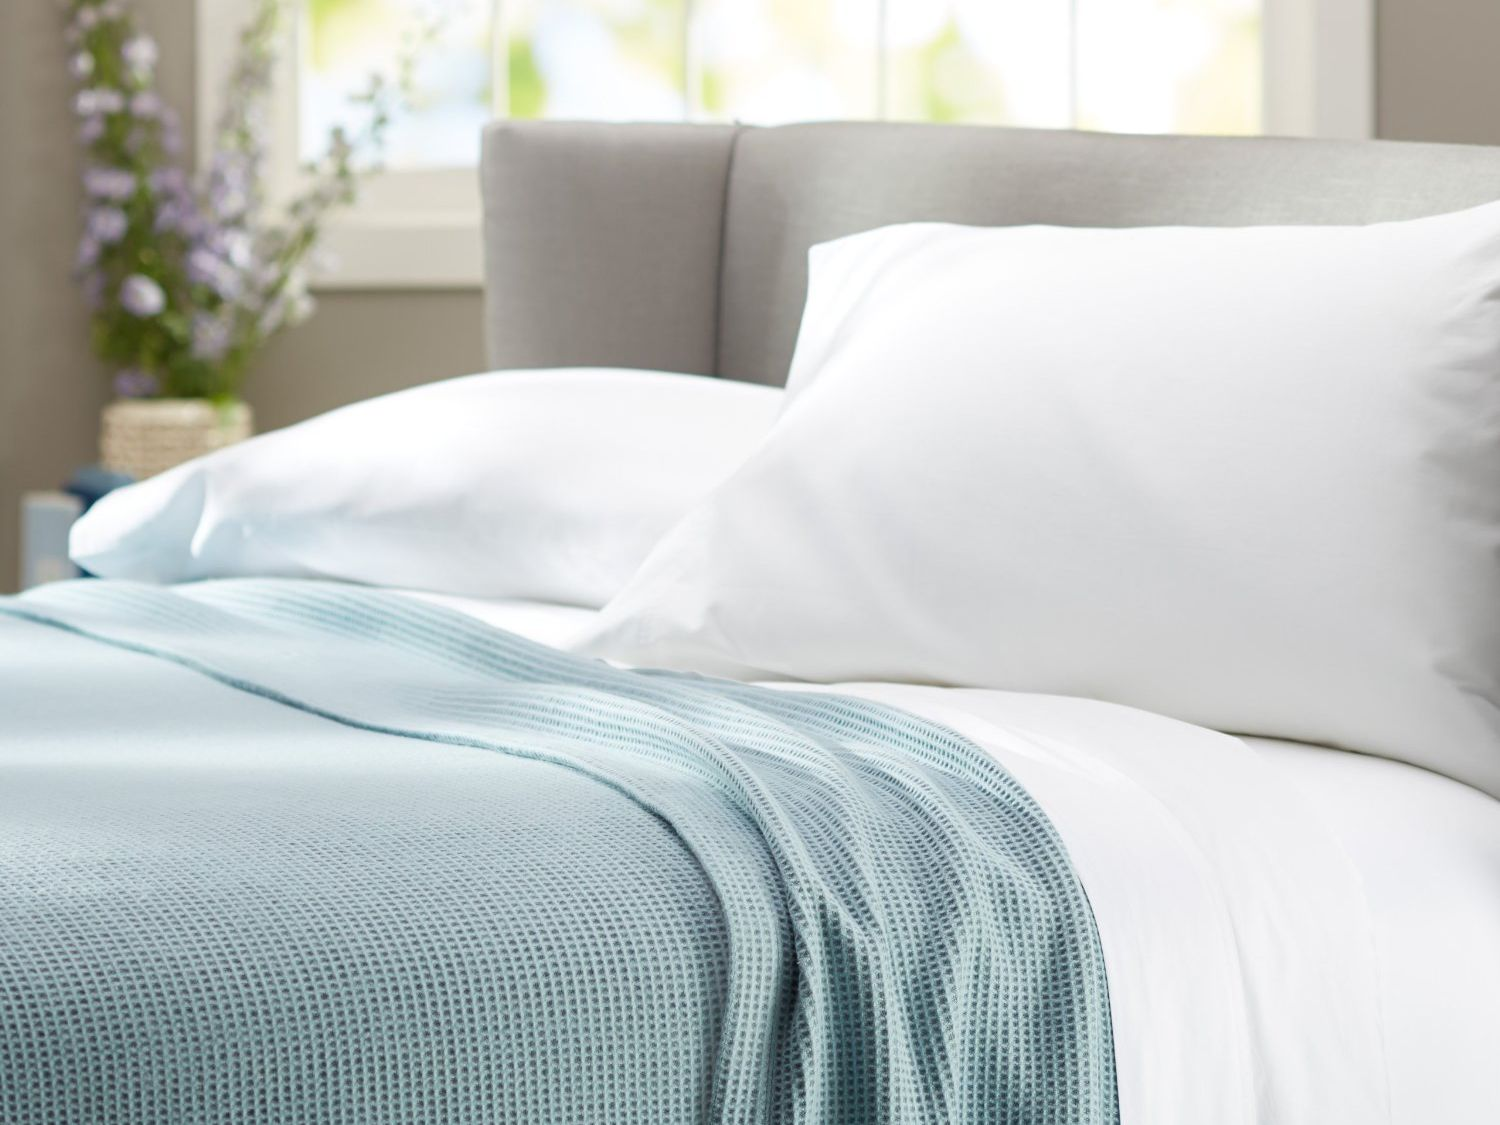 How To Keep Your Bedroom Cool In The Summer